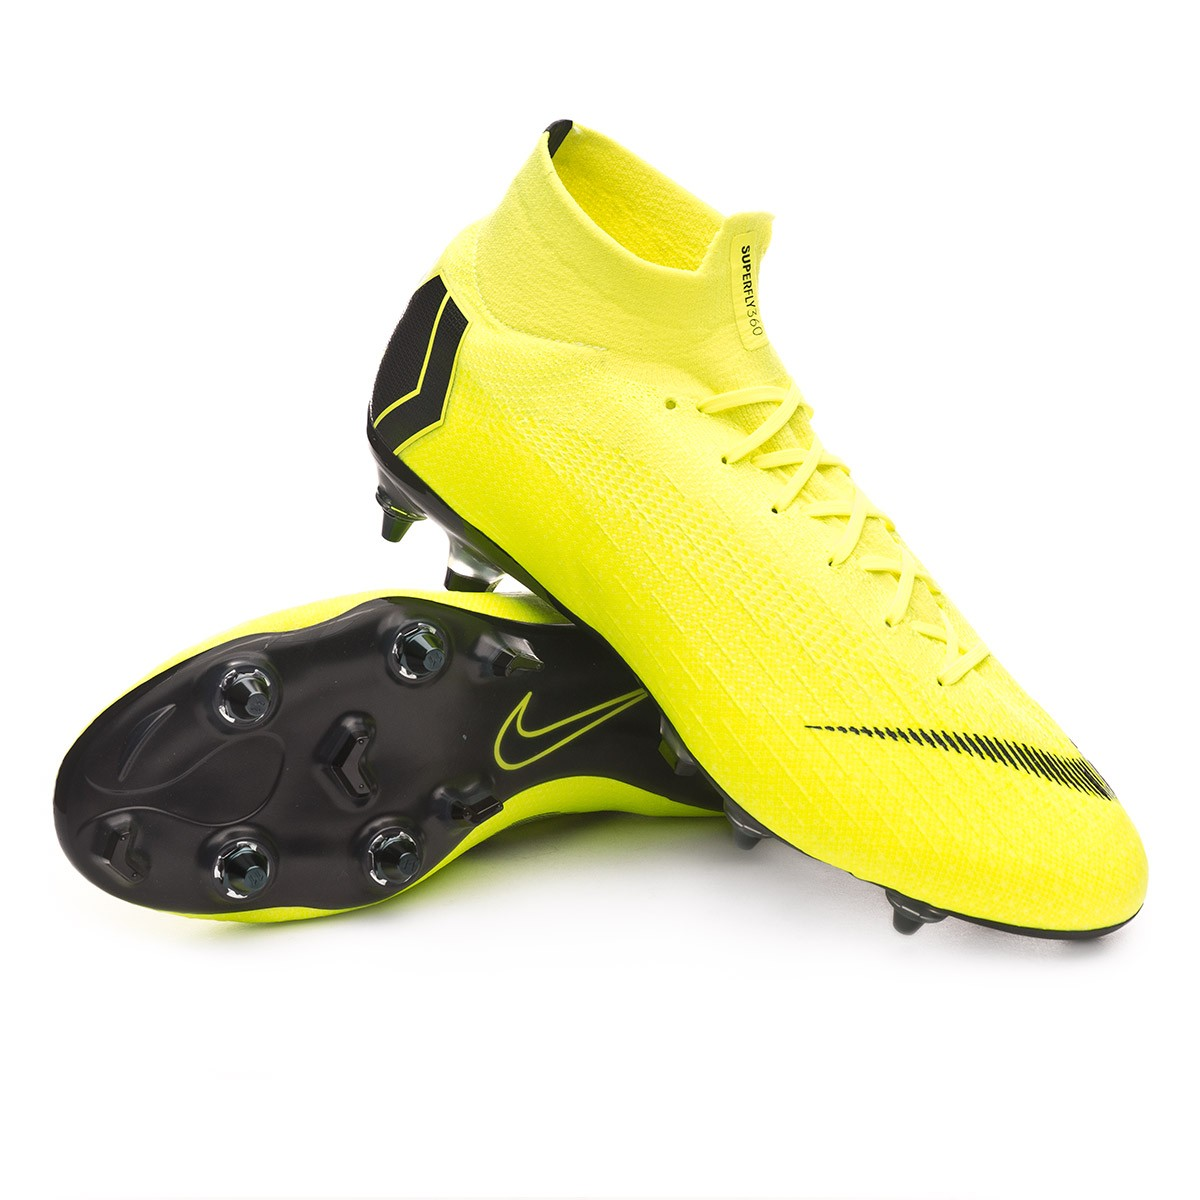 size 40 3dccf 52be9 Chaussure de foot Nike Mercurial Superfly VI Elite Anti-Clog SG-Pro  Volt-Black - Leaked soccer